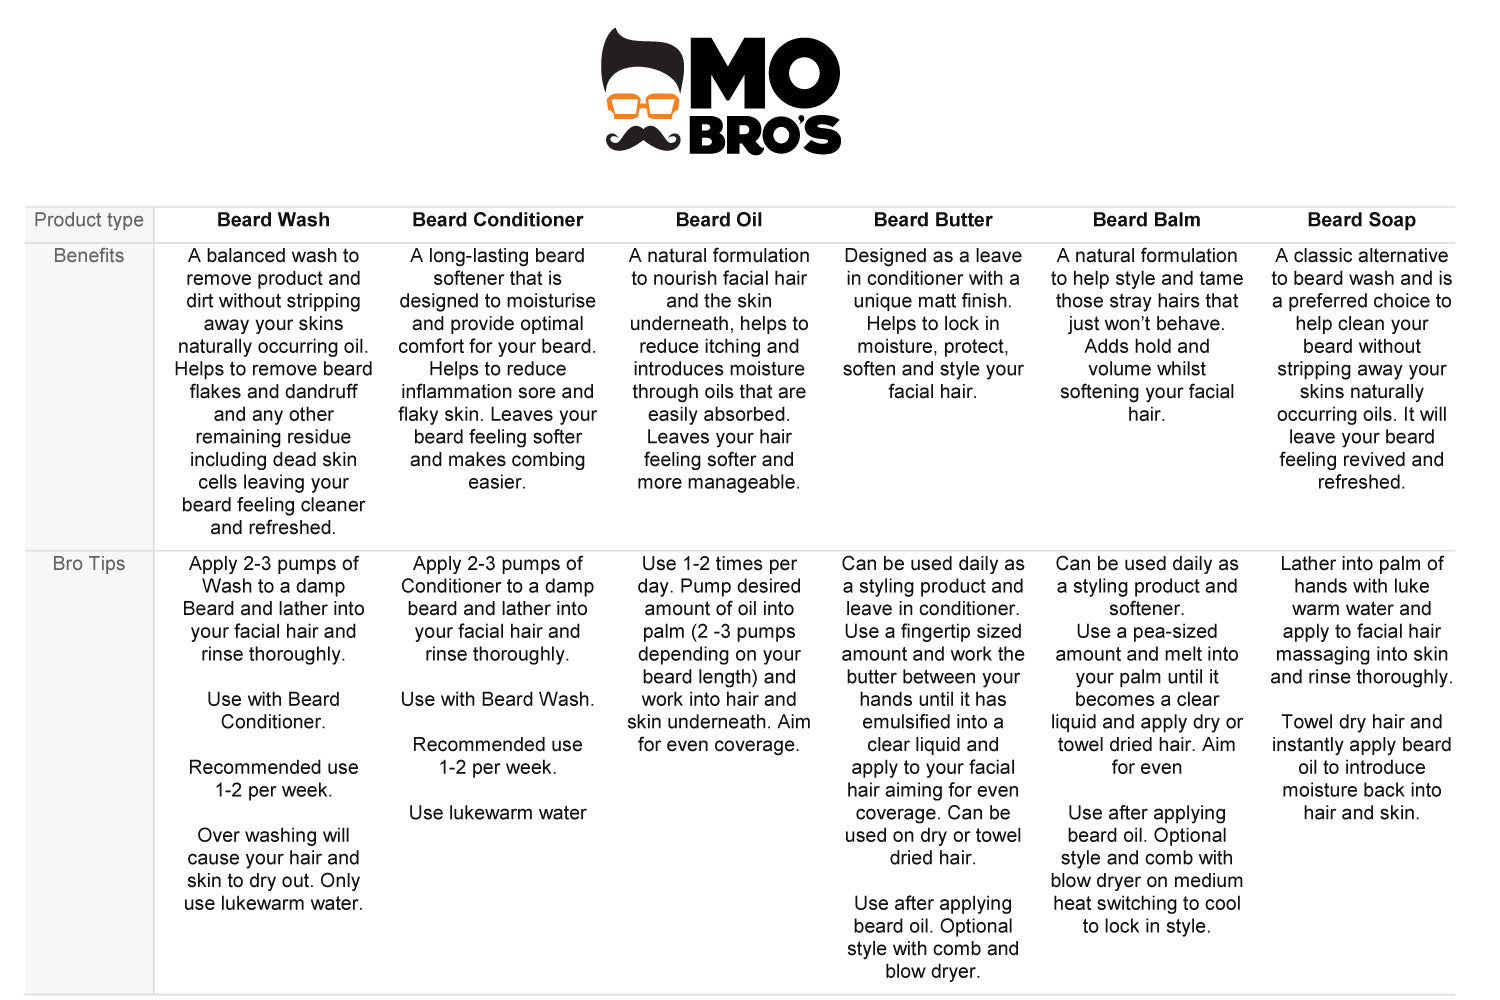 Mo Bro's Product Benefits